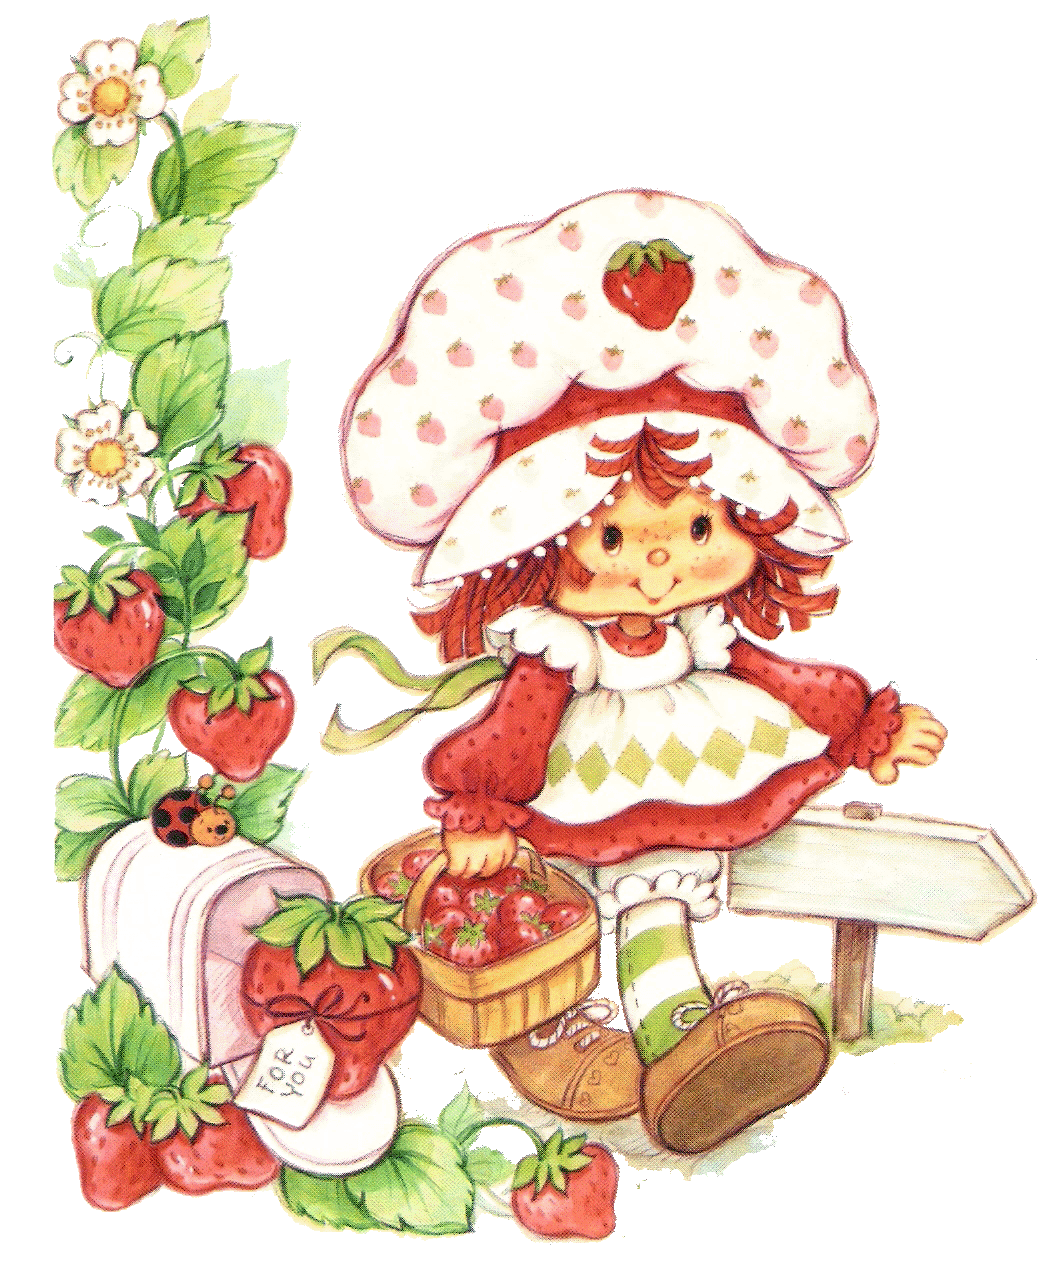 Strawberry Inspired | Fashion meets Food